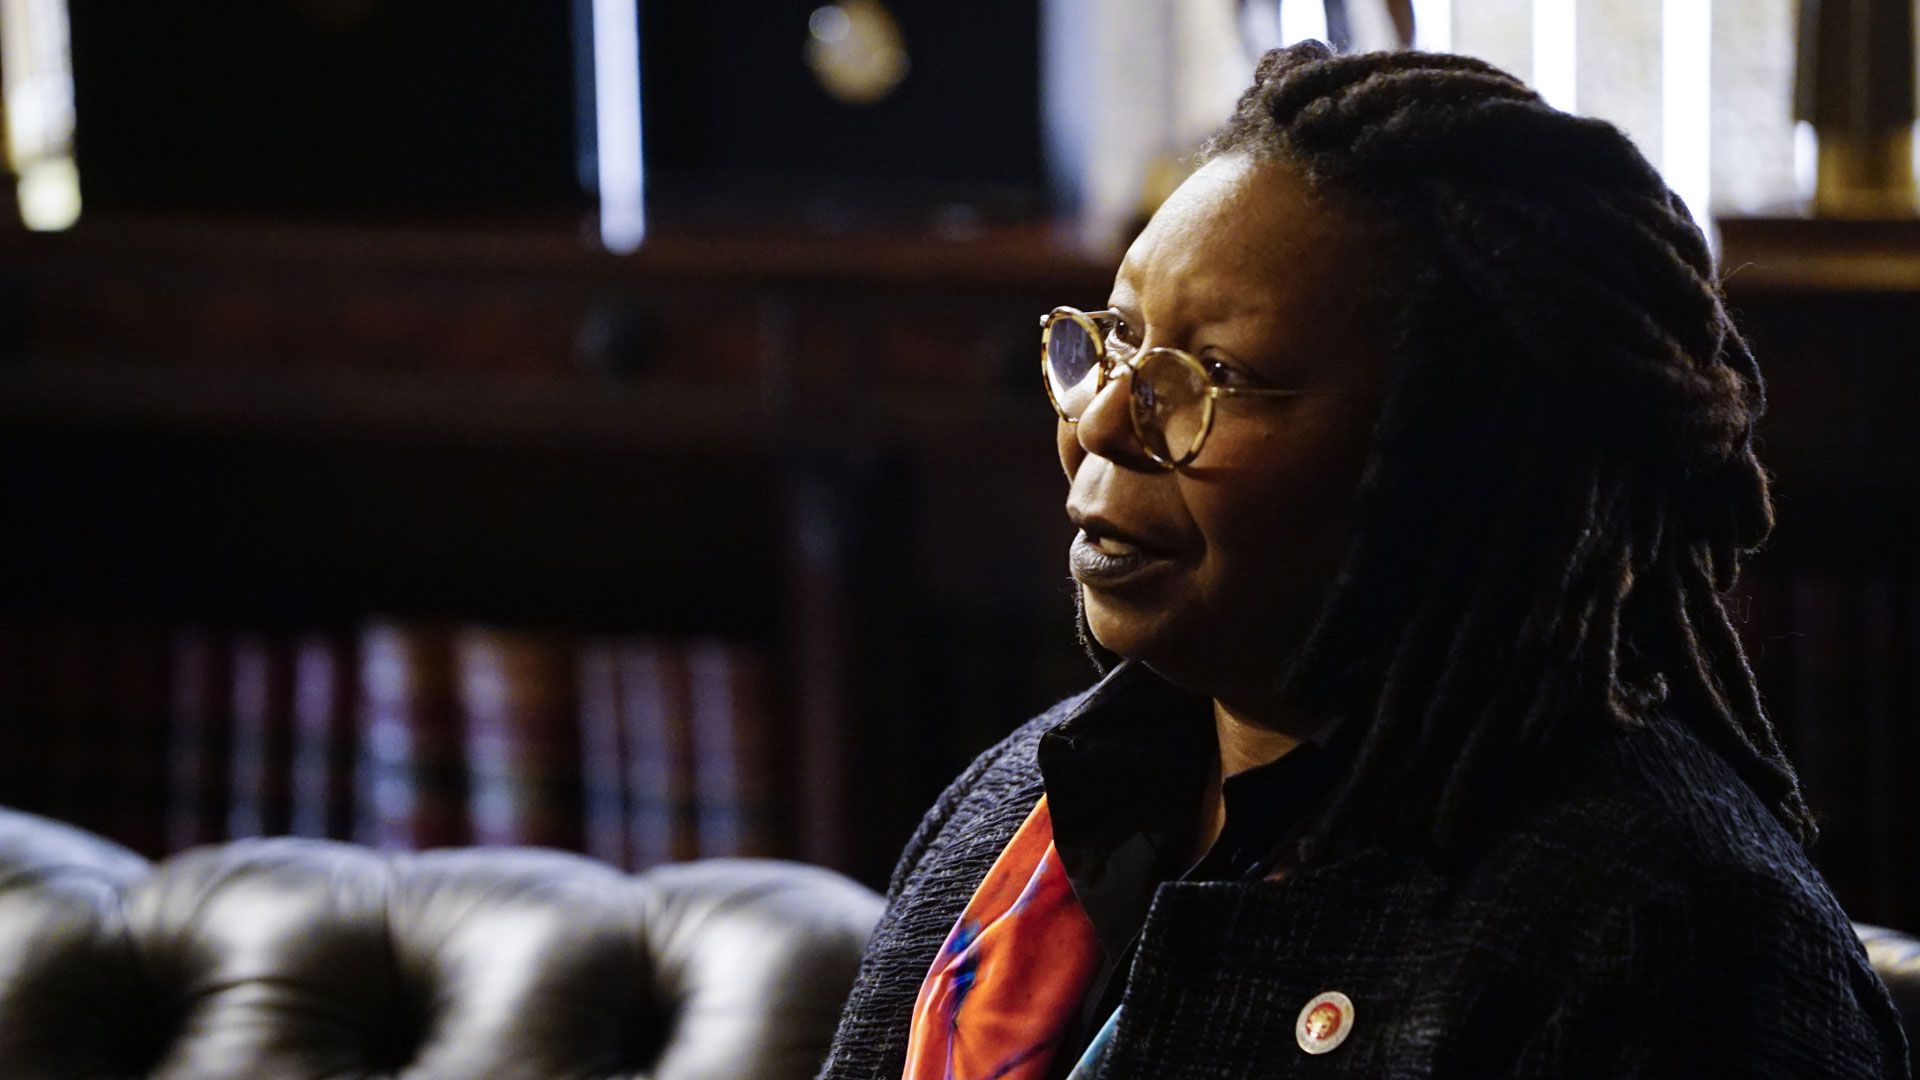 Whoopi Goldberg as City Council Speaker Regina Thomas